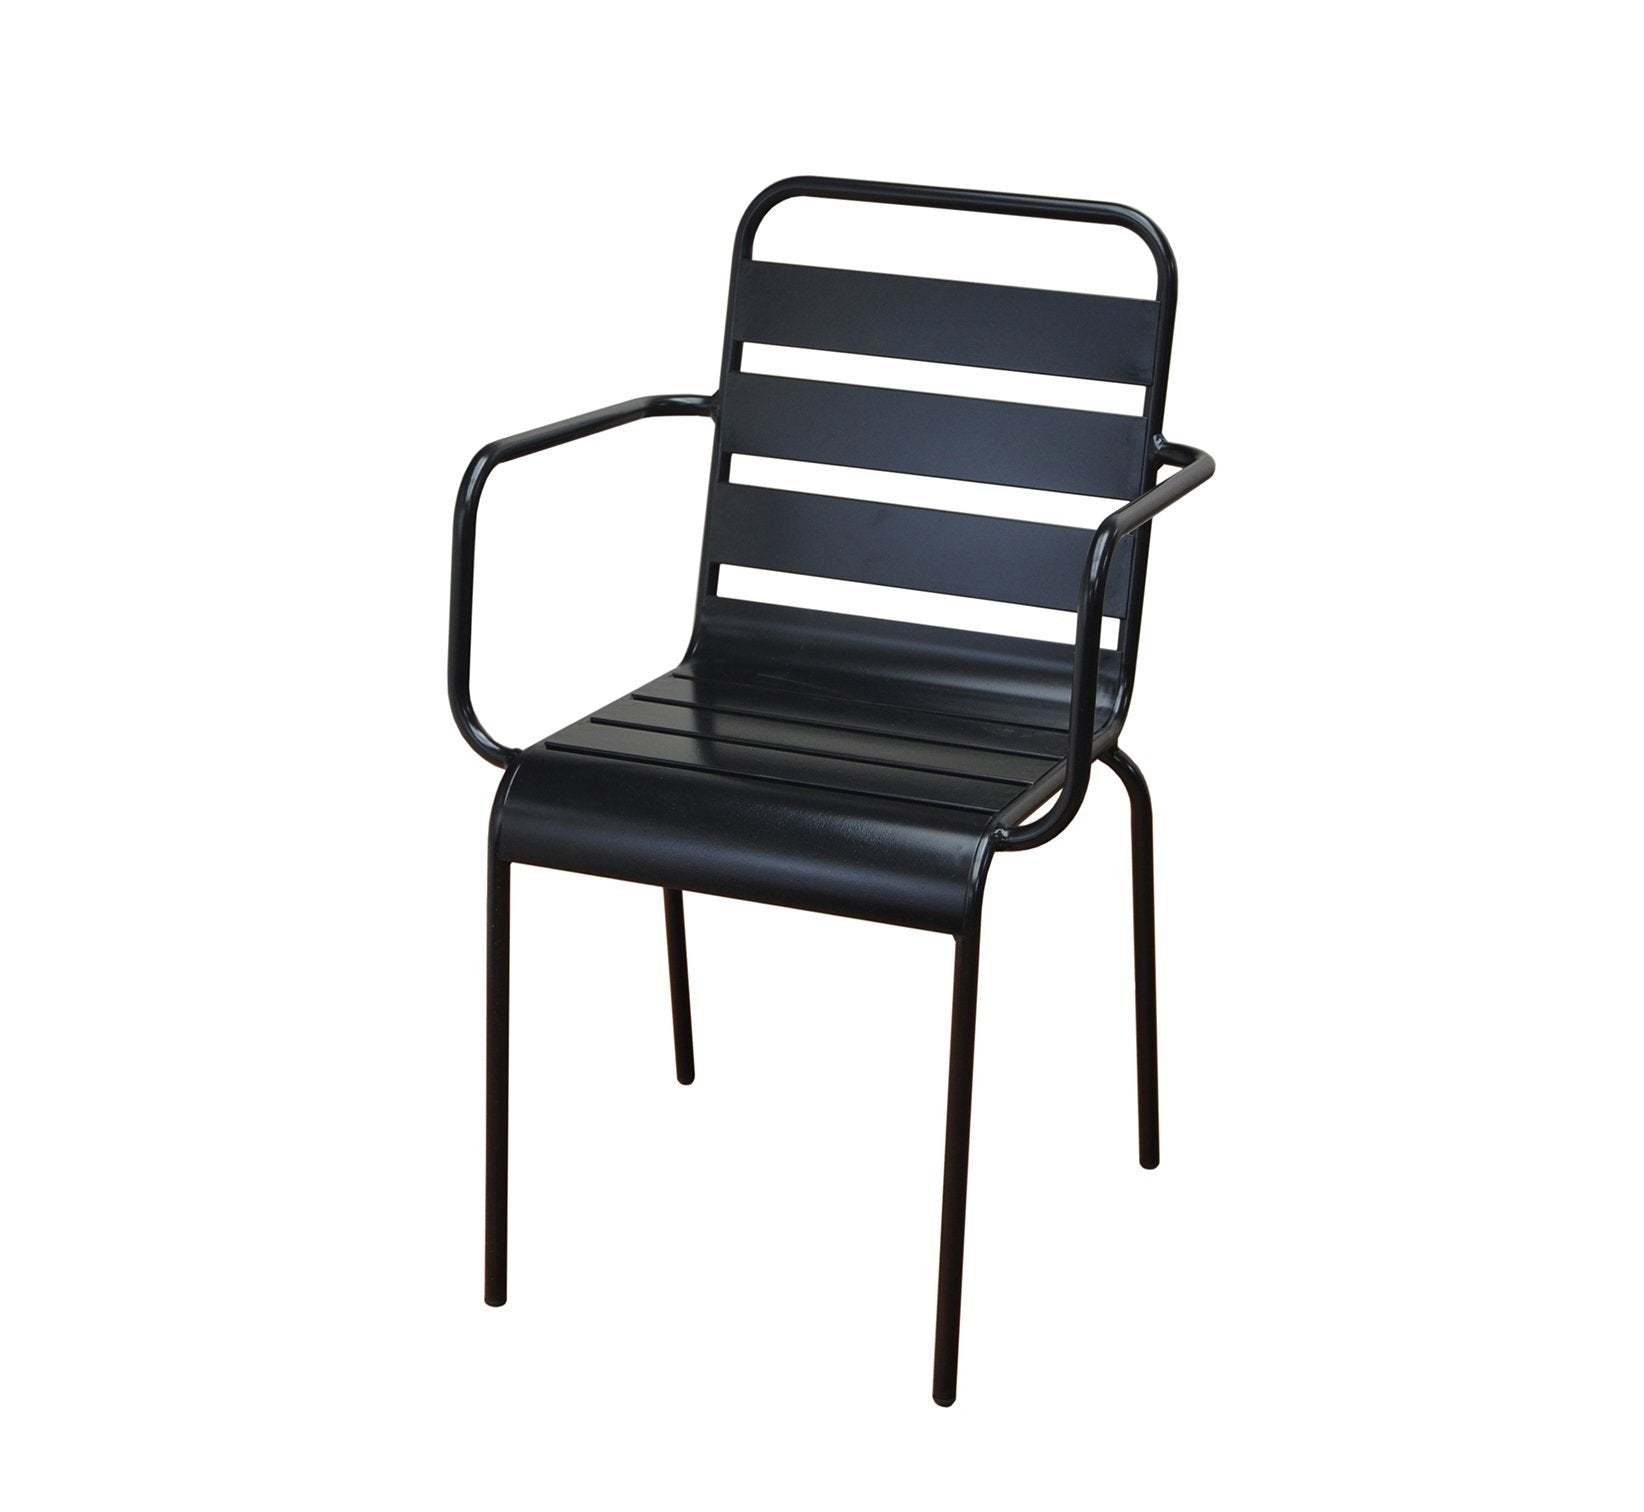 DHC 7013-BLK Black Aluminum Patio Chair Outdoor Black Finish Stack Chair